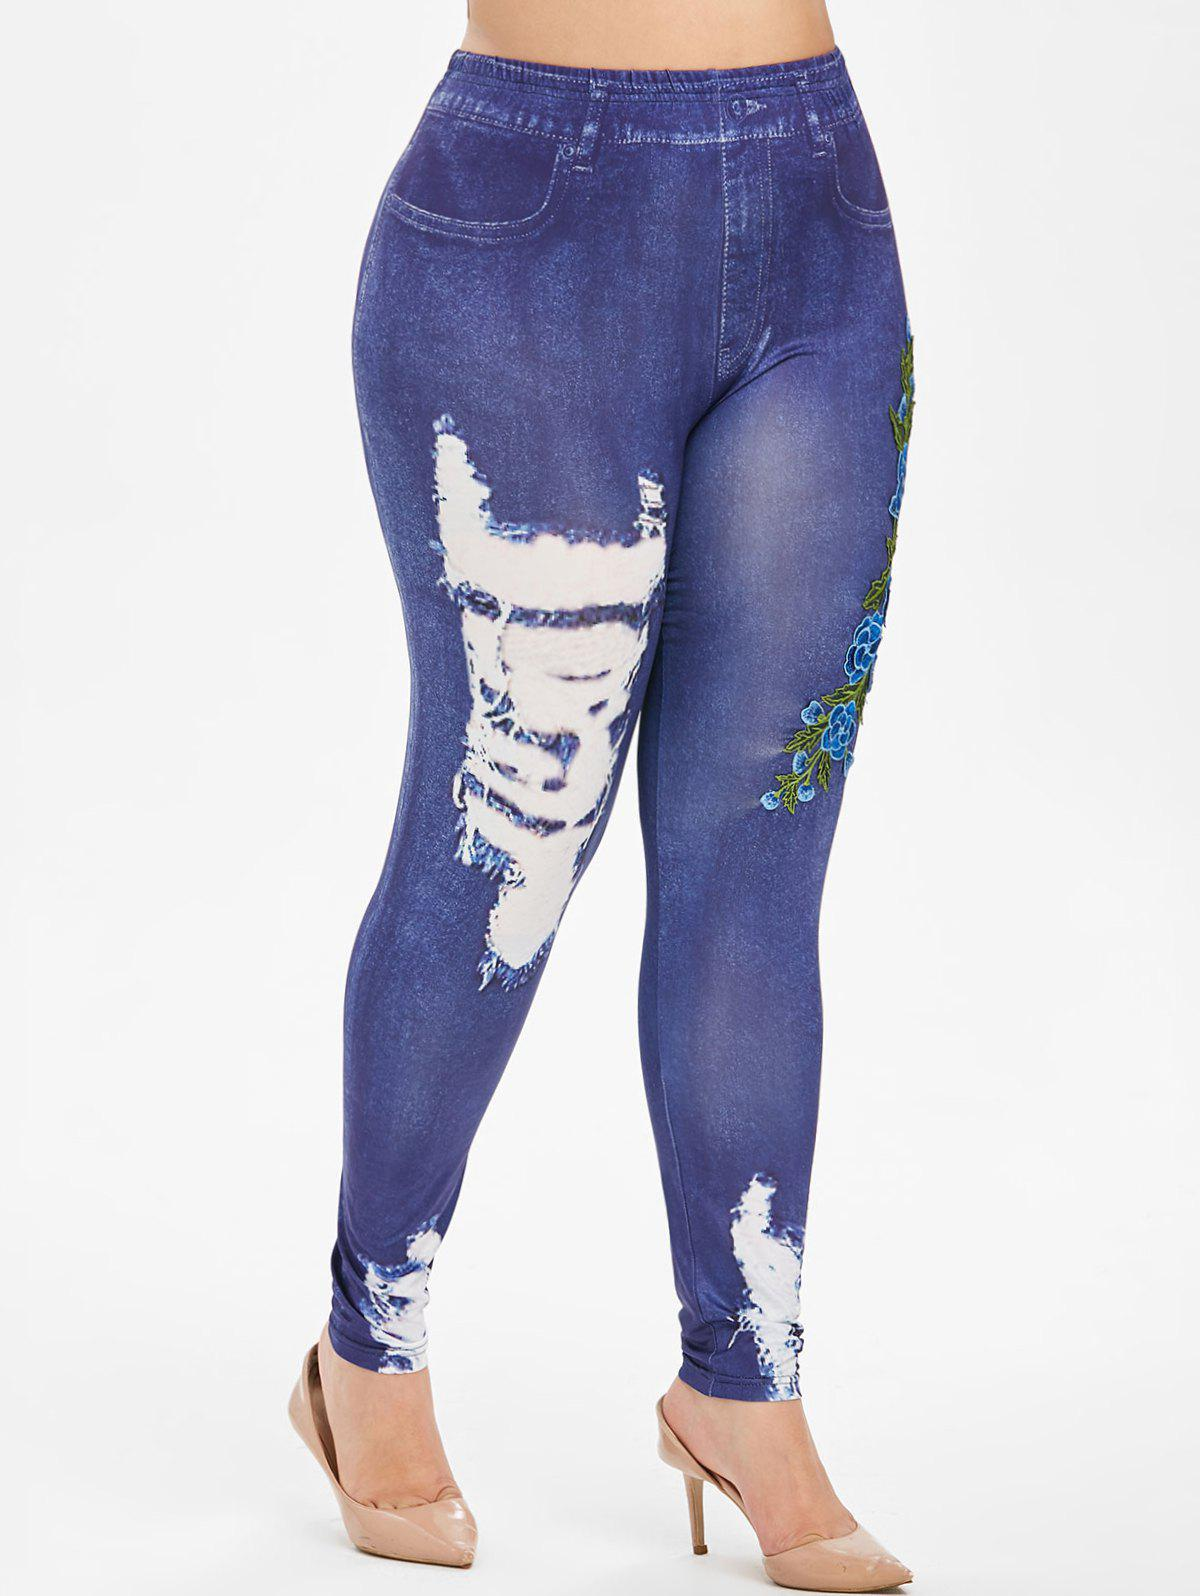 Sale Floral Embroidered Applique 3D High Waisted Plus Size Jeggings